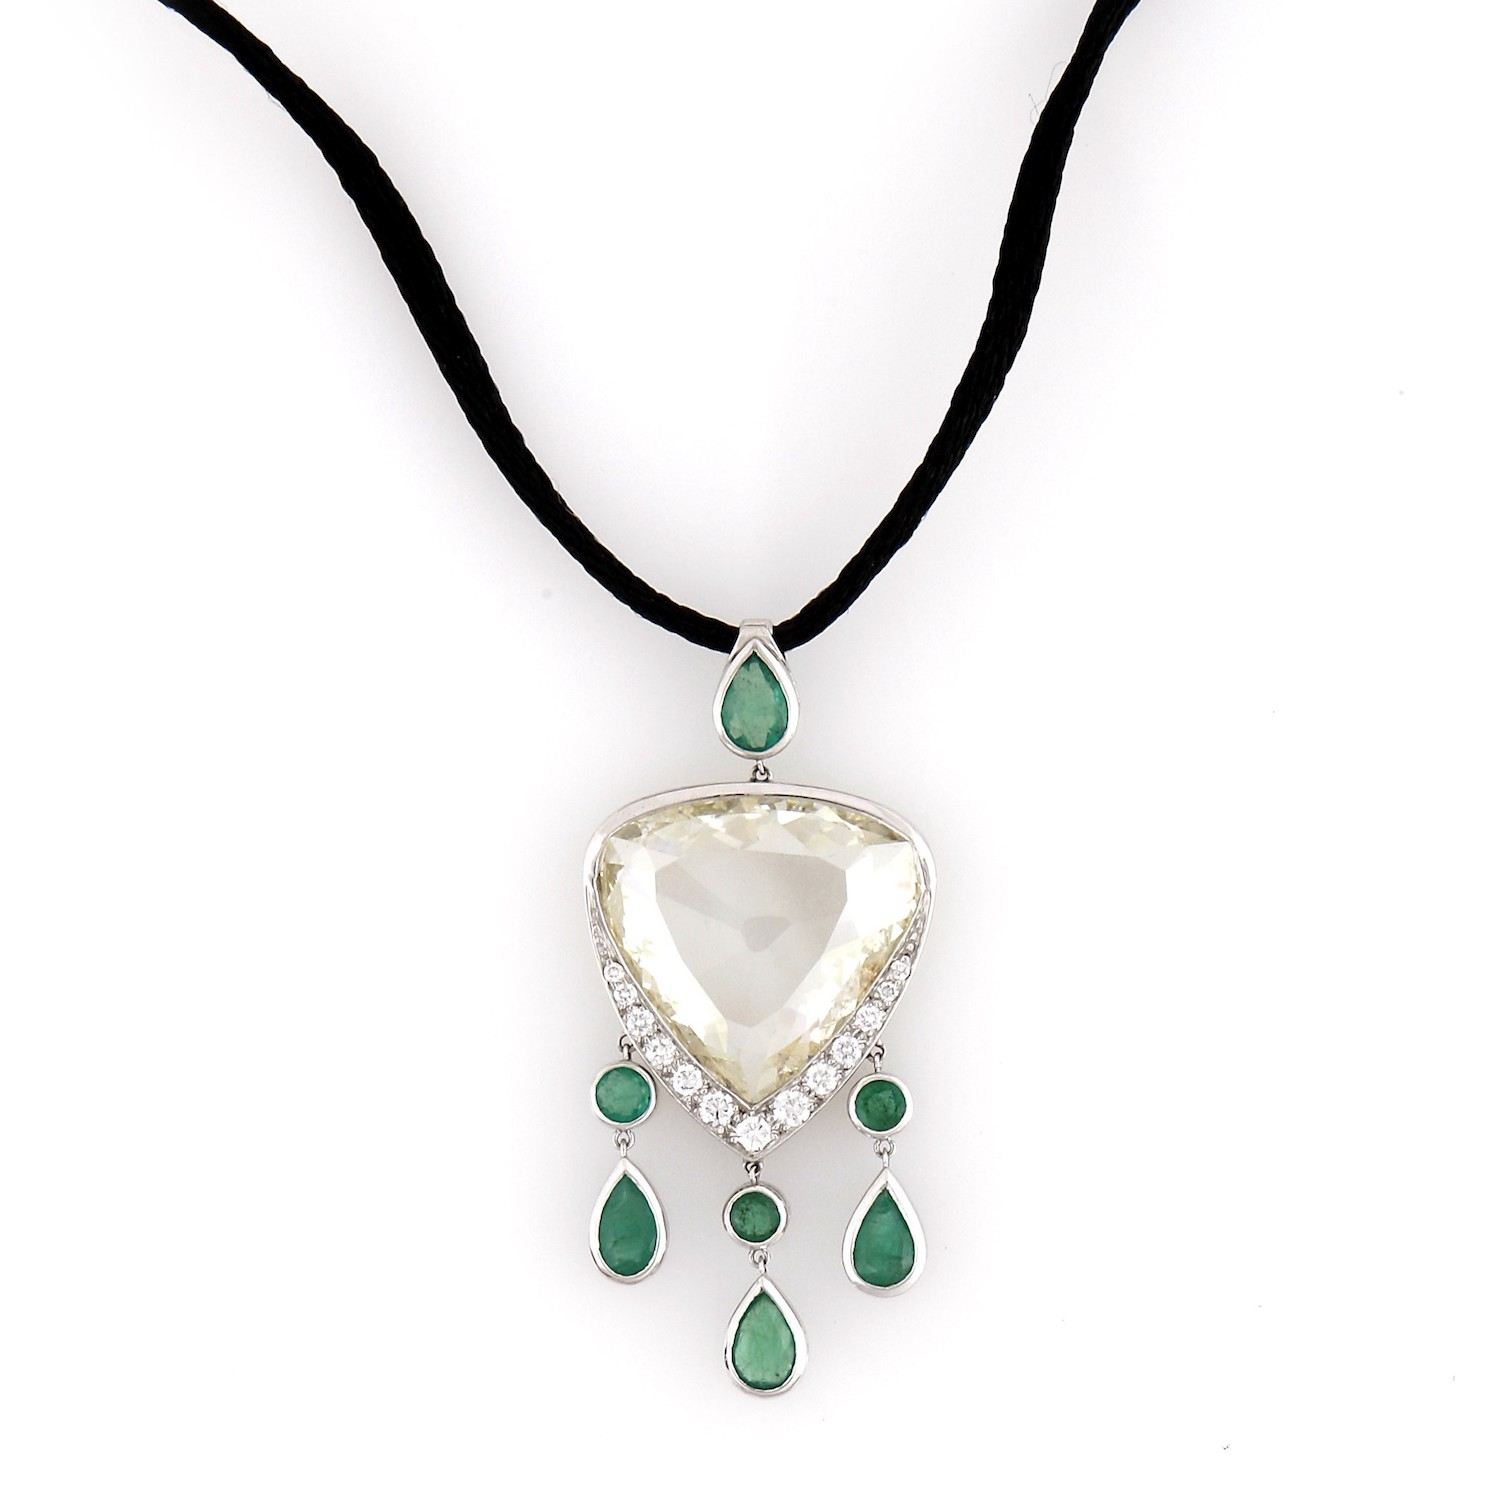 An Indian table diamond set in white gold with emeralds and brilliant cut diamonds.